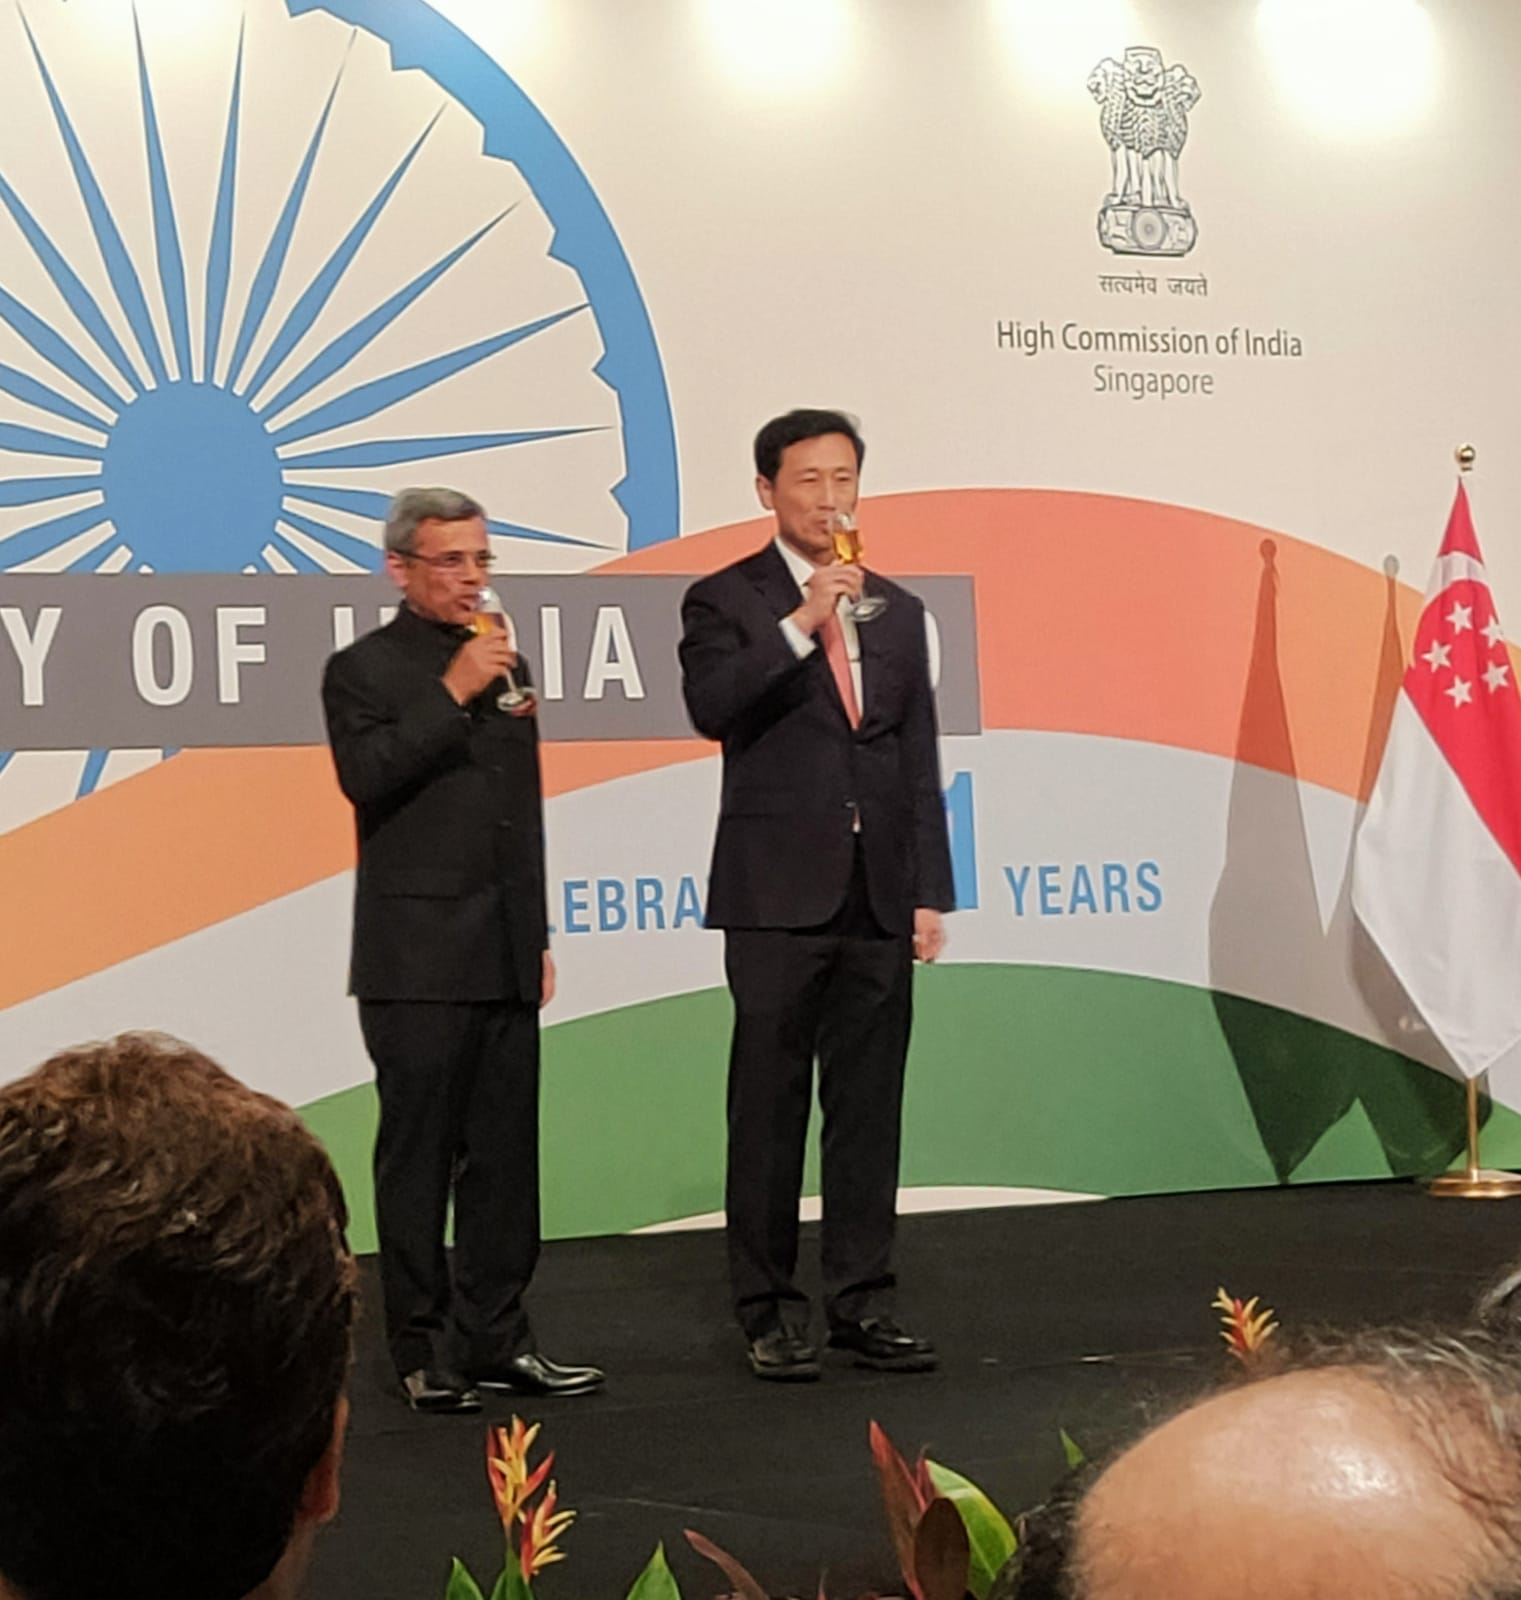 Jawed Ashraf, High Commissioner of India to the Republic of Singapore, joined the guest of honour for the toast. Photo: Connected to India